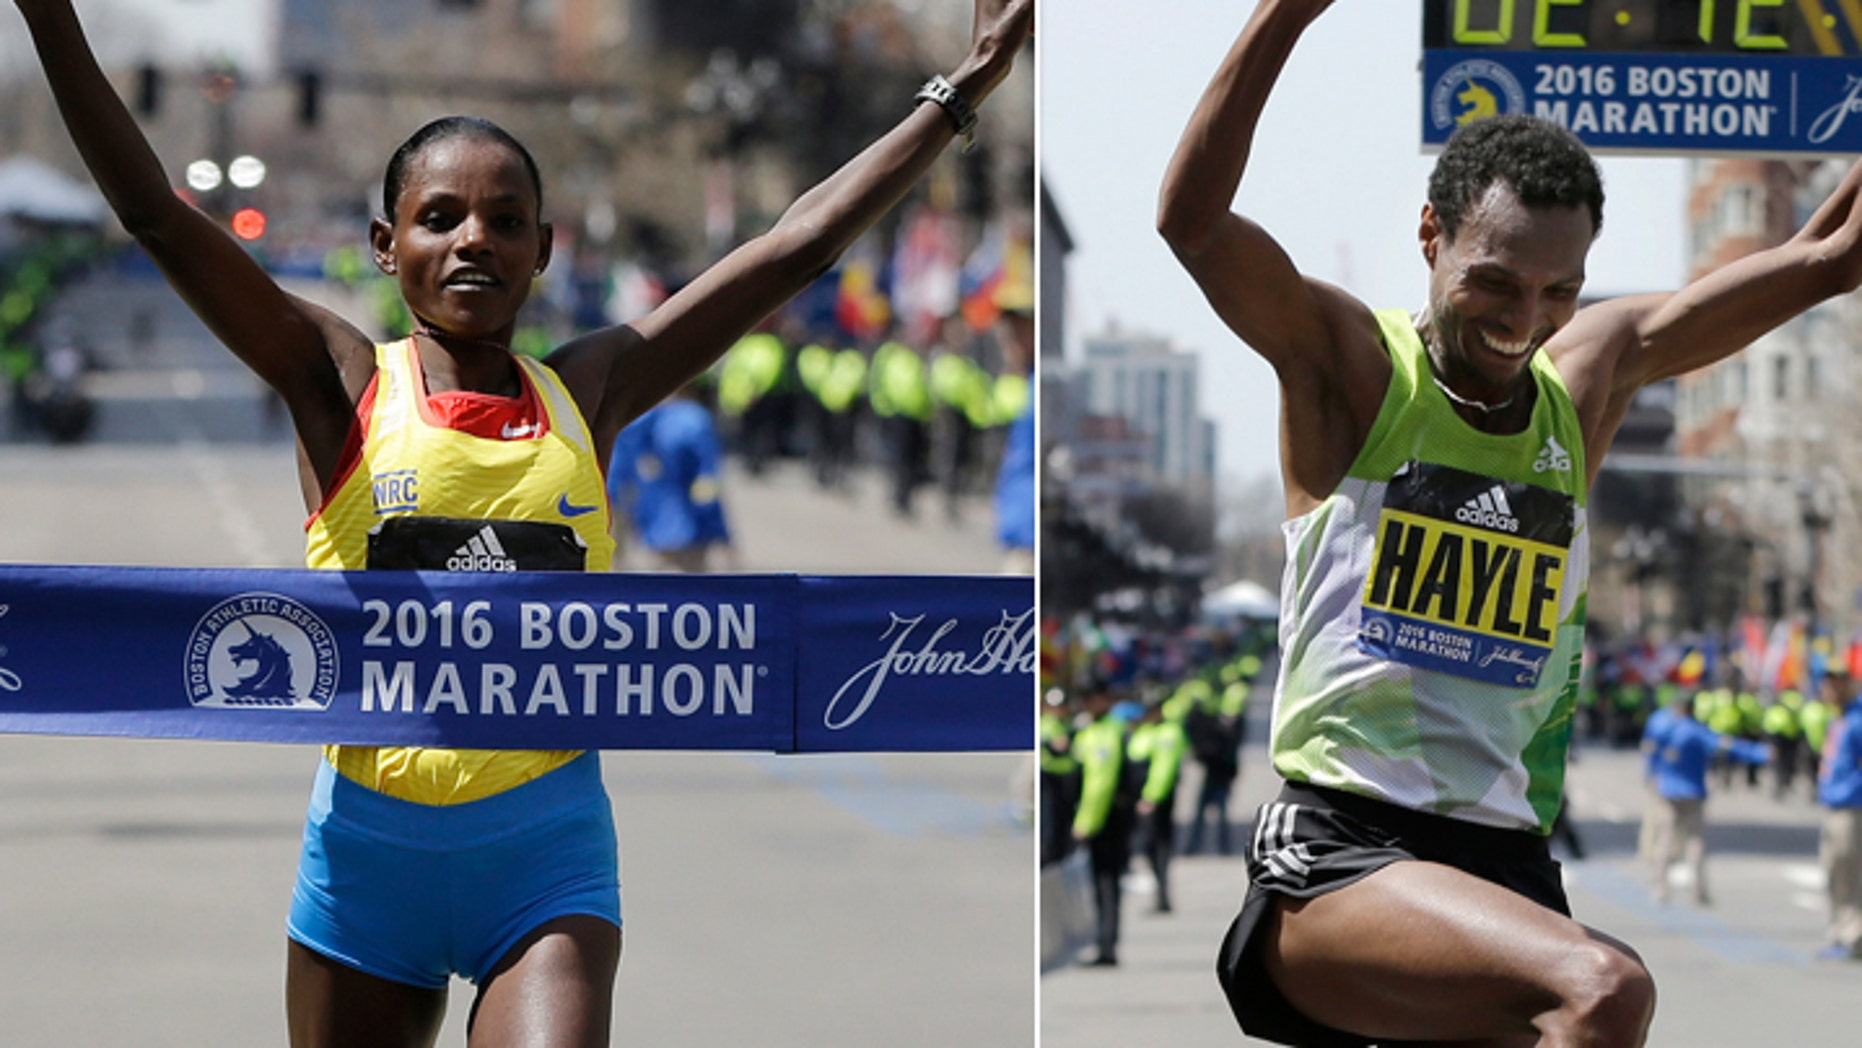 Atsede Baysa won the women's race and Lemi Berhanu Hayle won the men's race at the Boston Marathon.